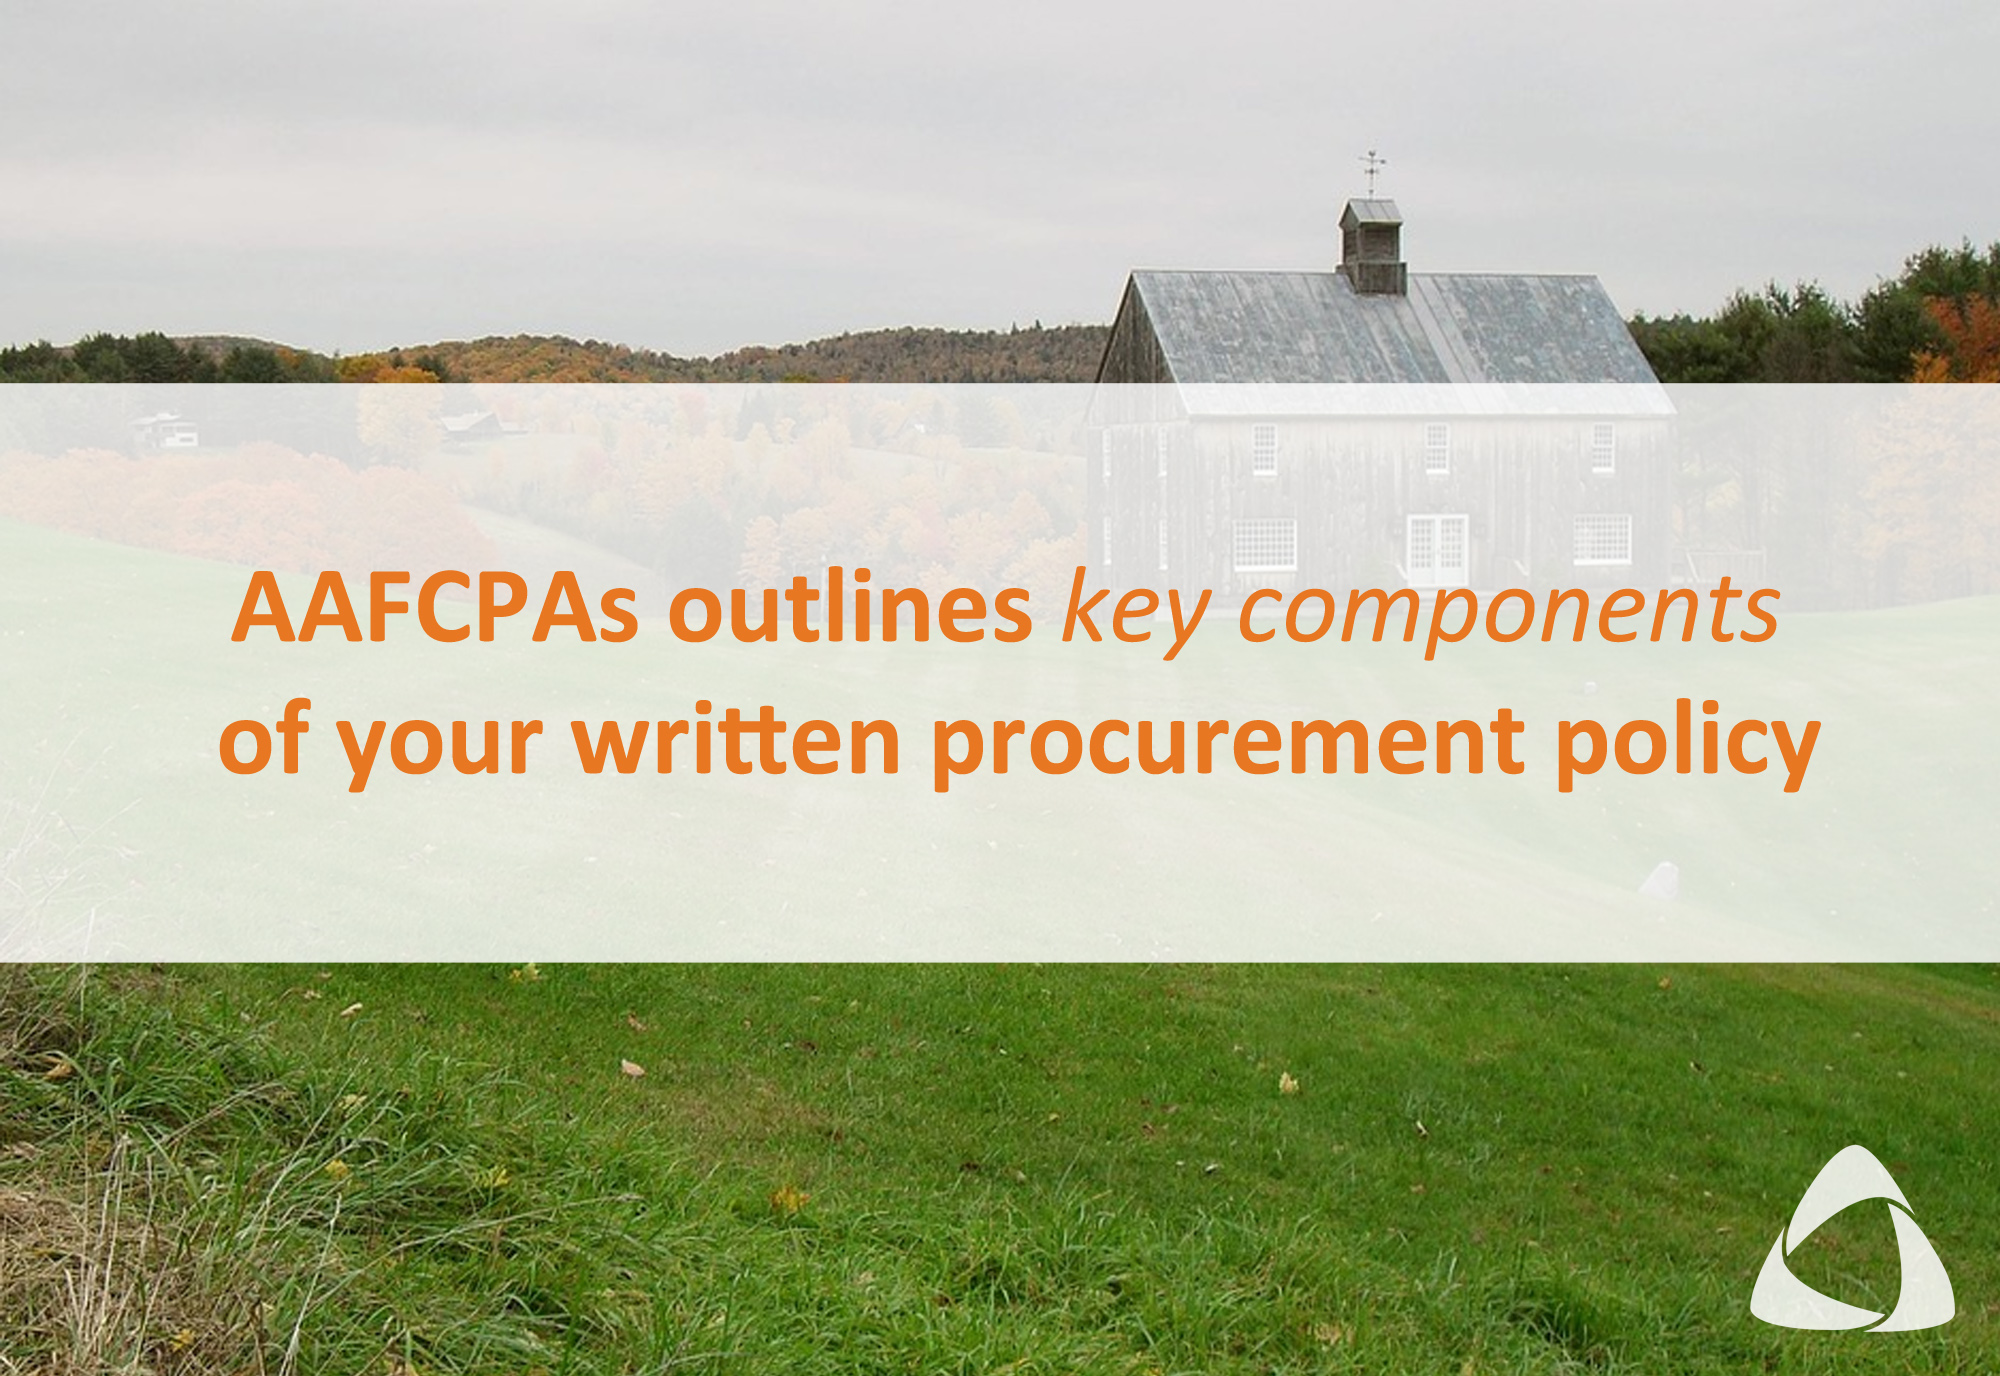 Outlines key components of your written procurement policy